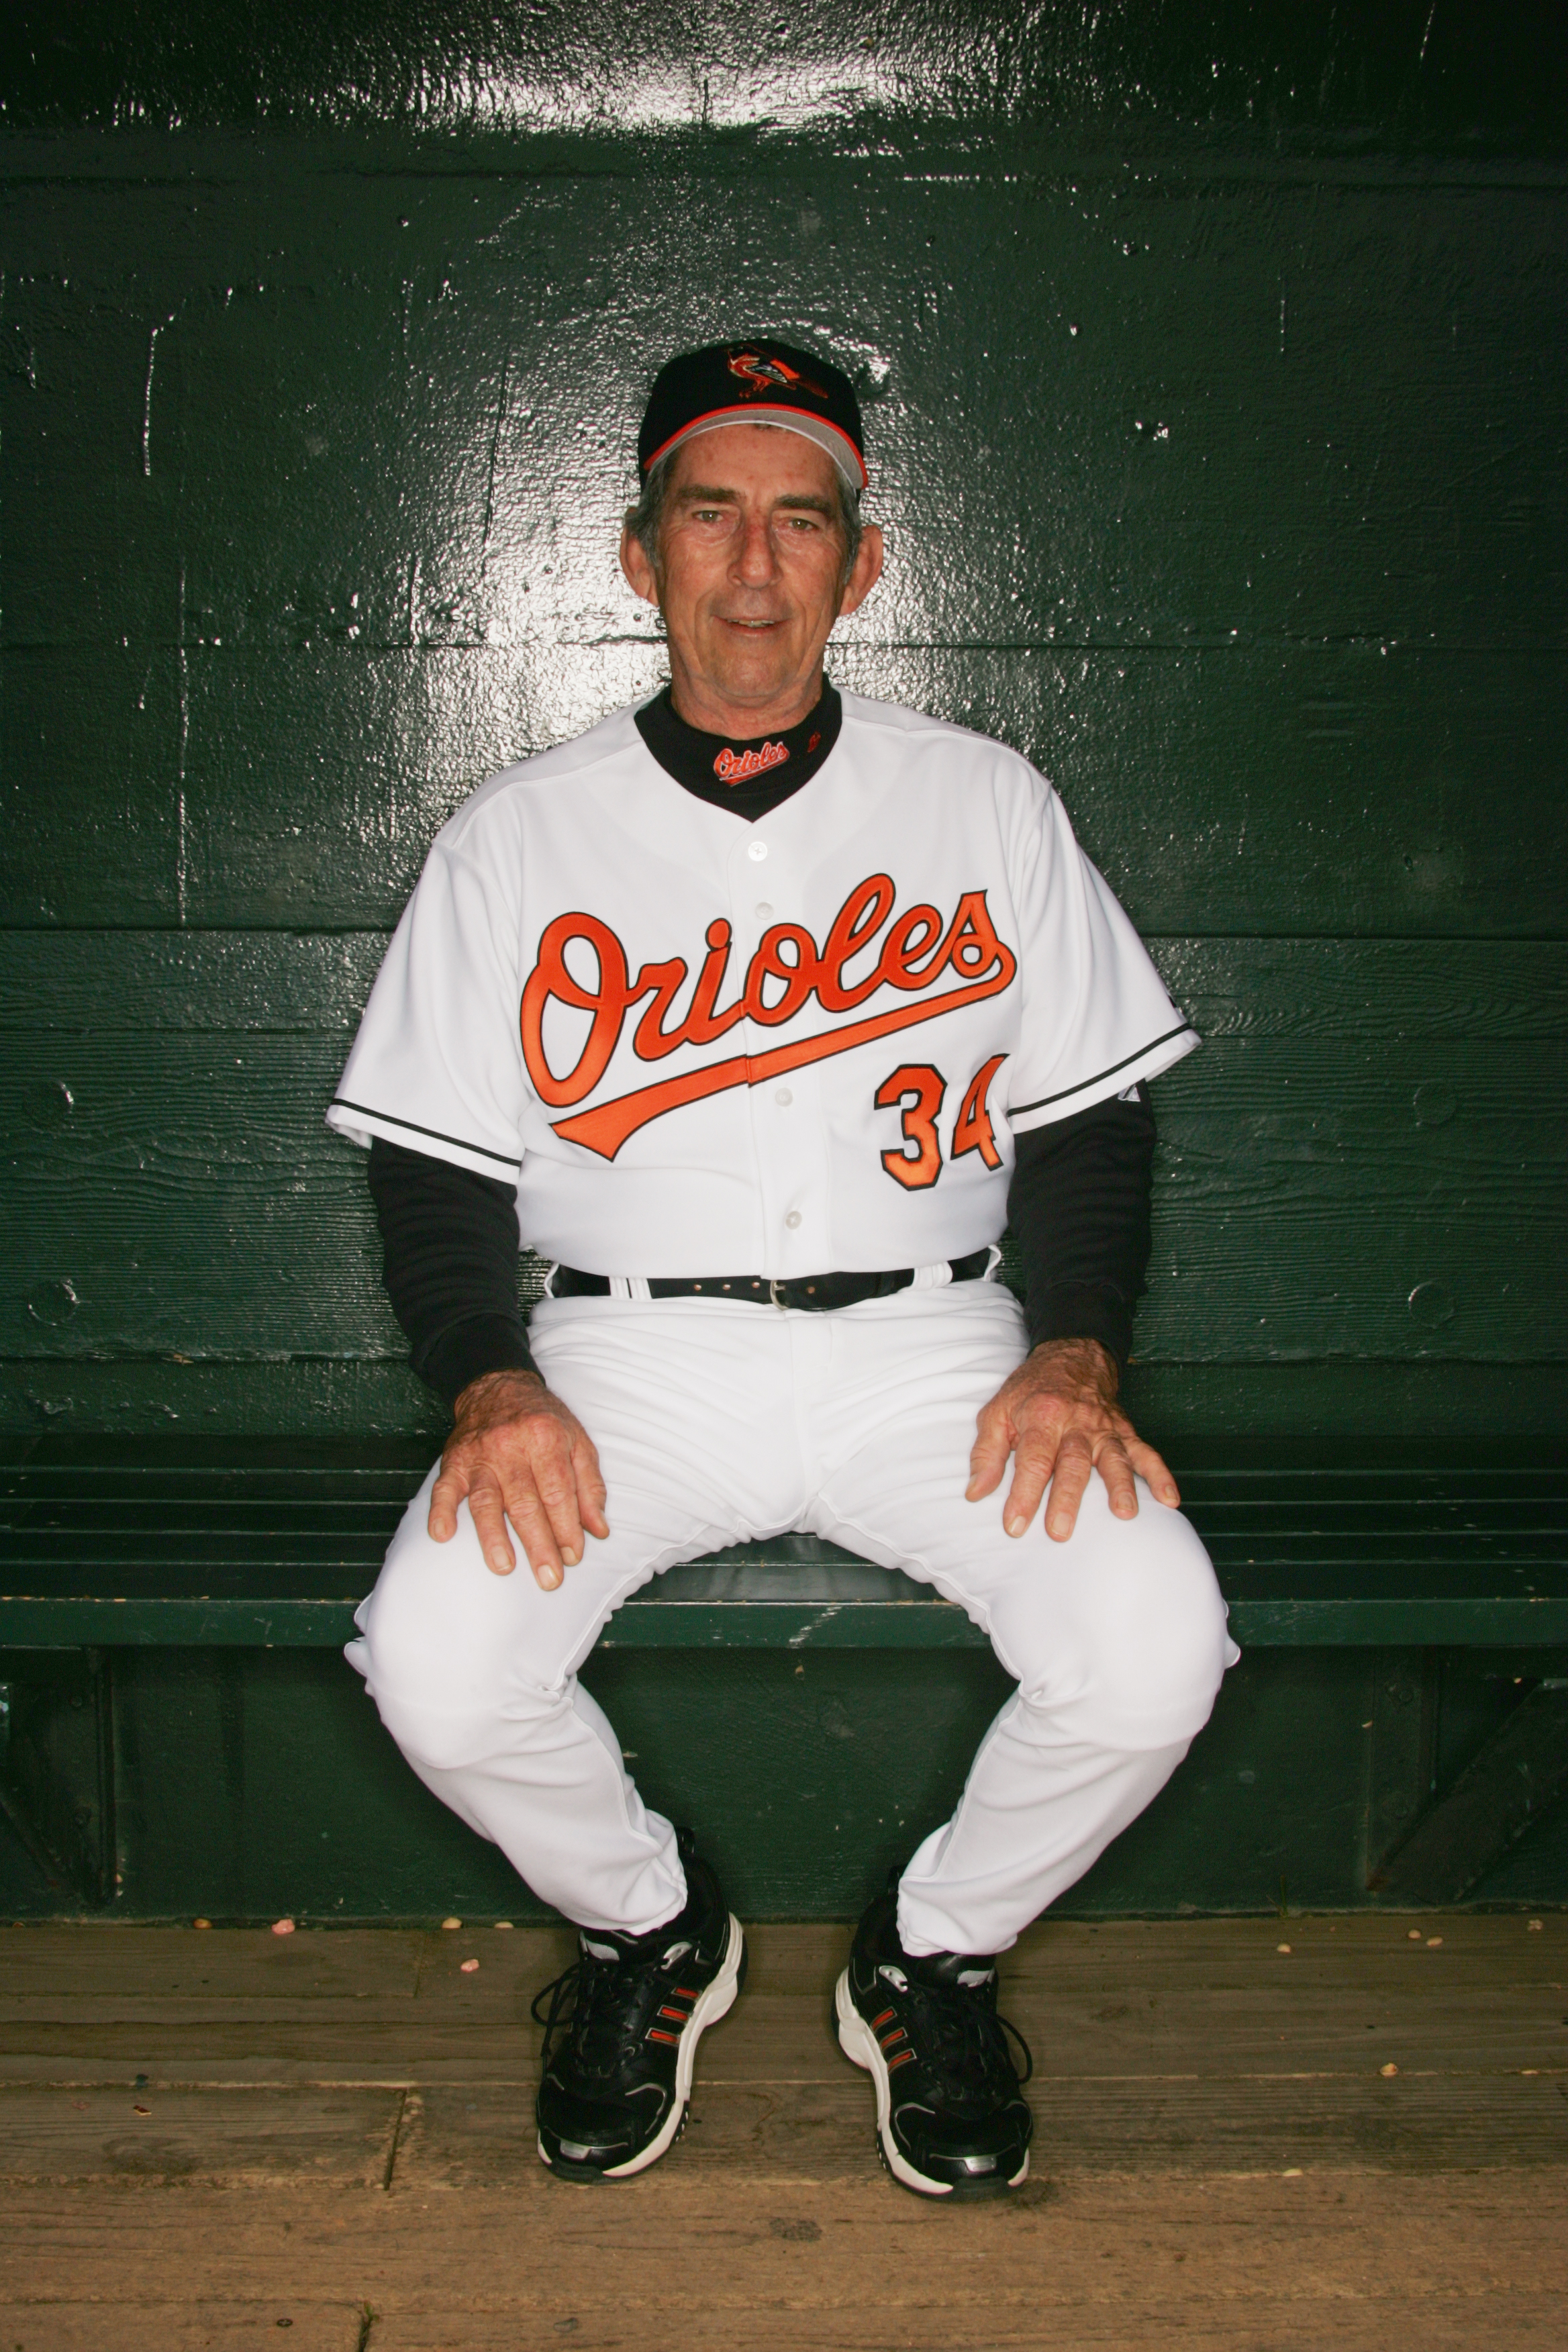 FORT LAUDERDALE, FL - FEBRUARY 28:  Ray Miller of the Baltimore Orioles poses for a portrait during Orioles Photo Day at Ft. Lauderdale Stadium on February 28, 2005 in Ft. Lauderdale, Florida.  (Photo by Ronald Martinez/Getty Images)